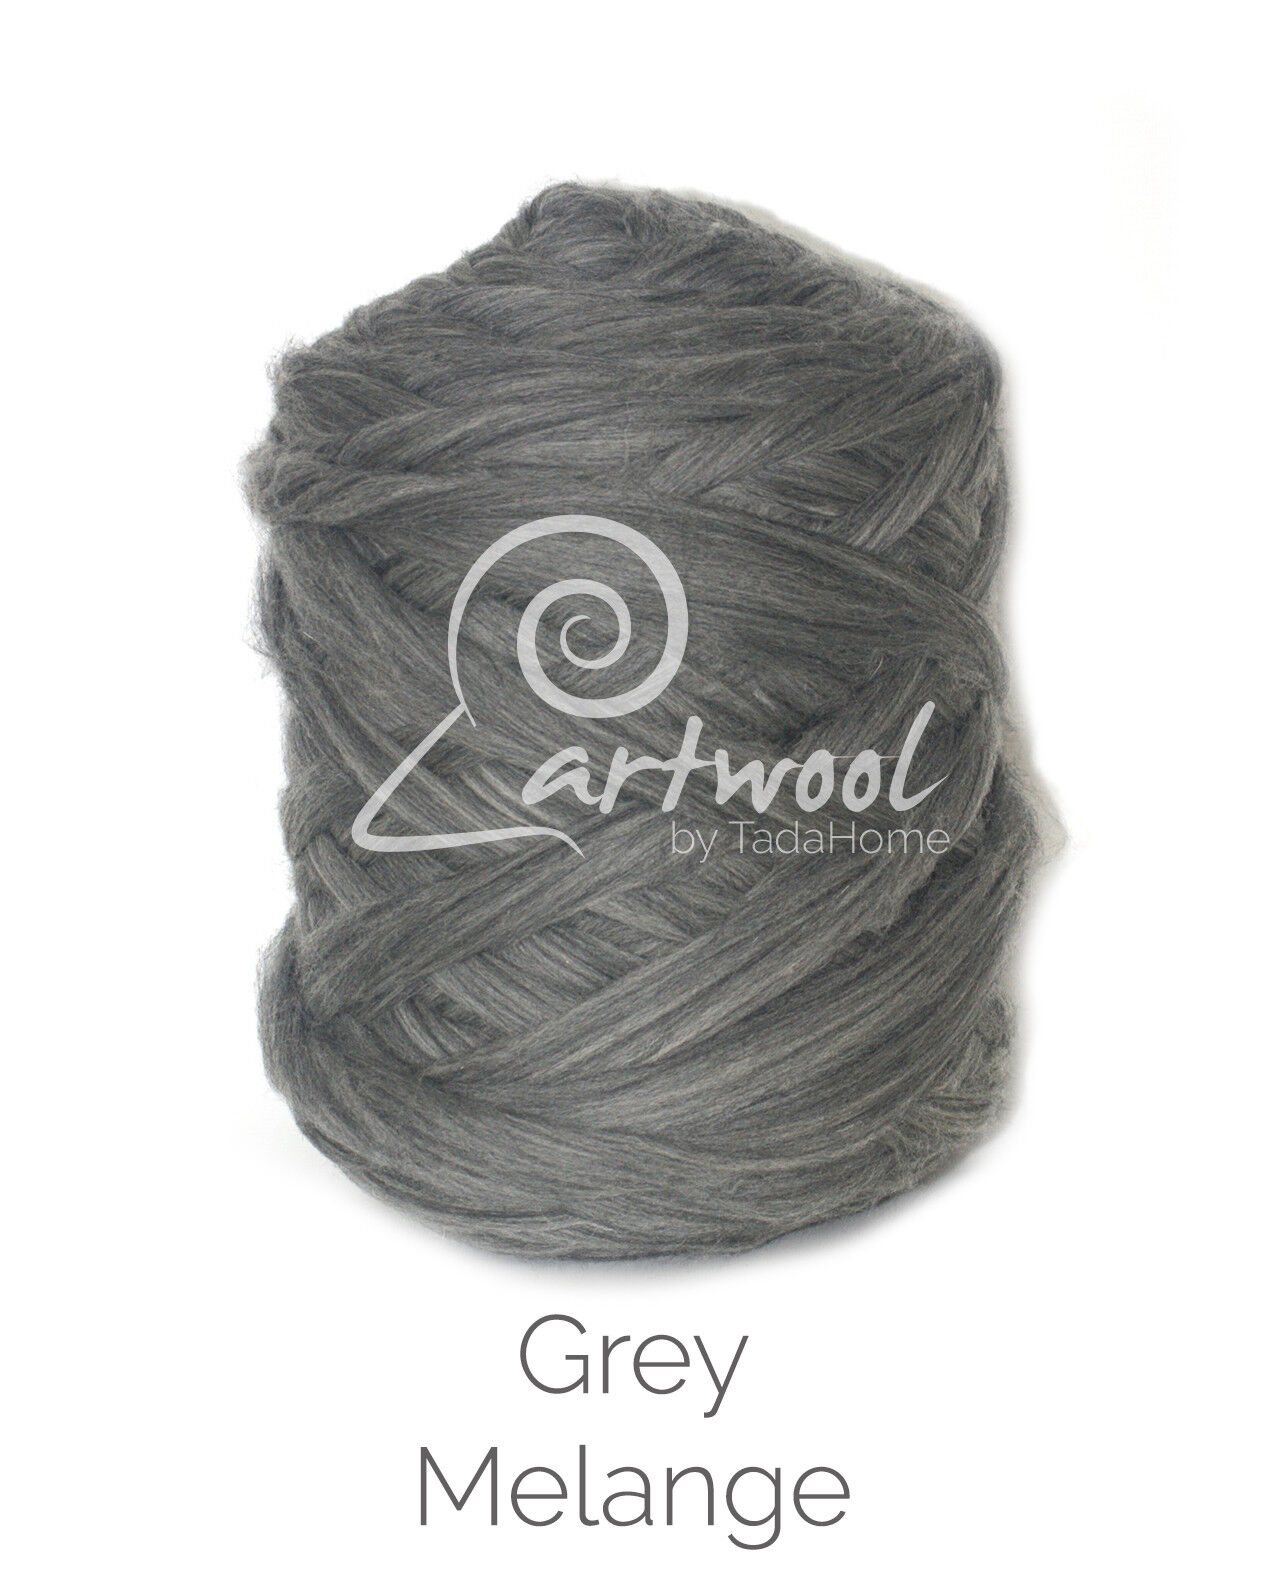 1kg Cream Mammoth® Giant Super Chunky Big Extreme Arm Knitting Merino Like Yarn